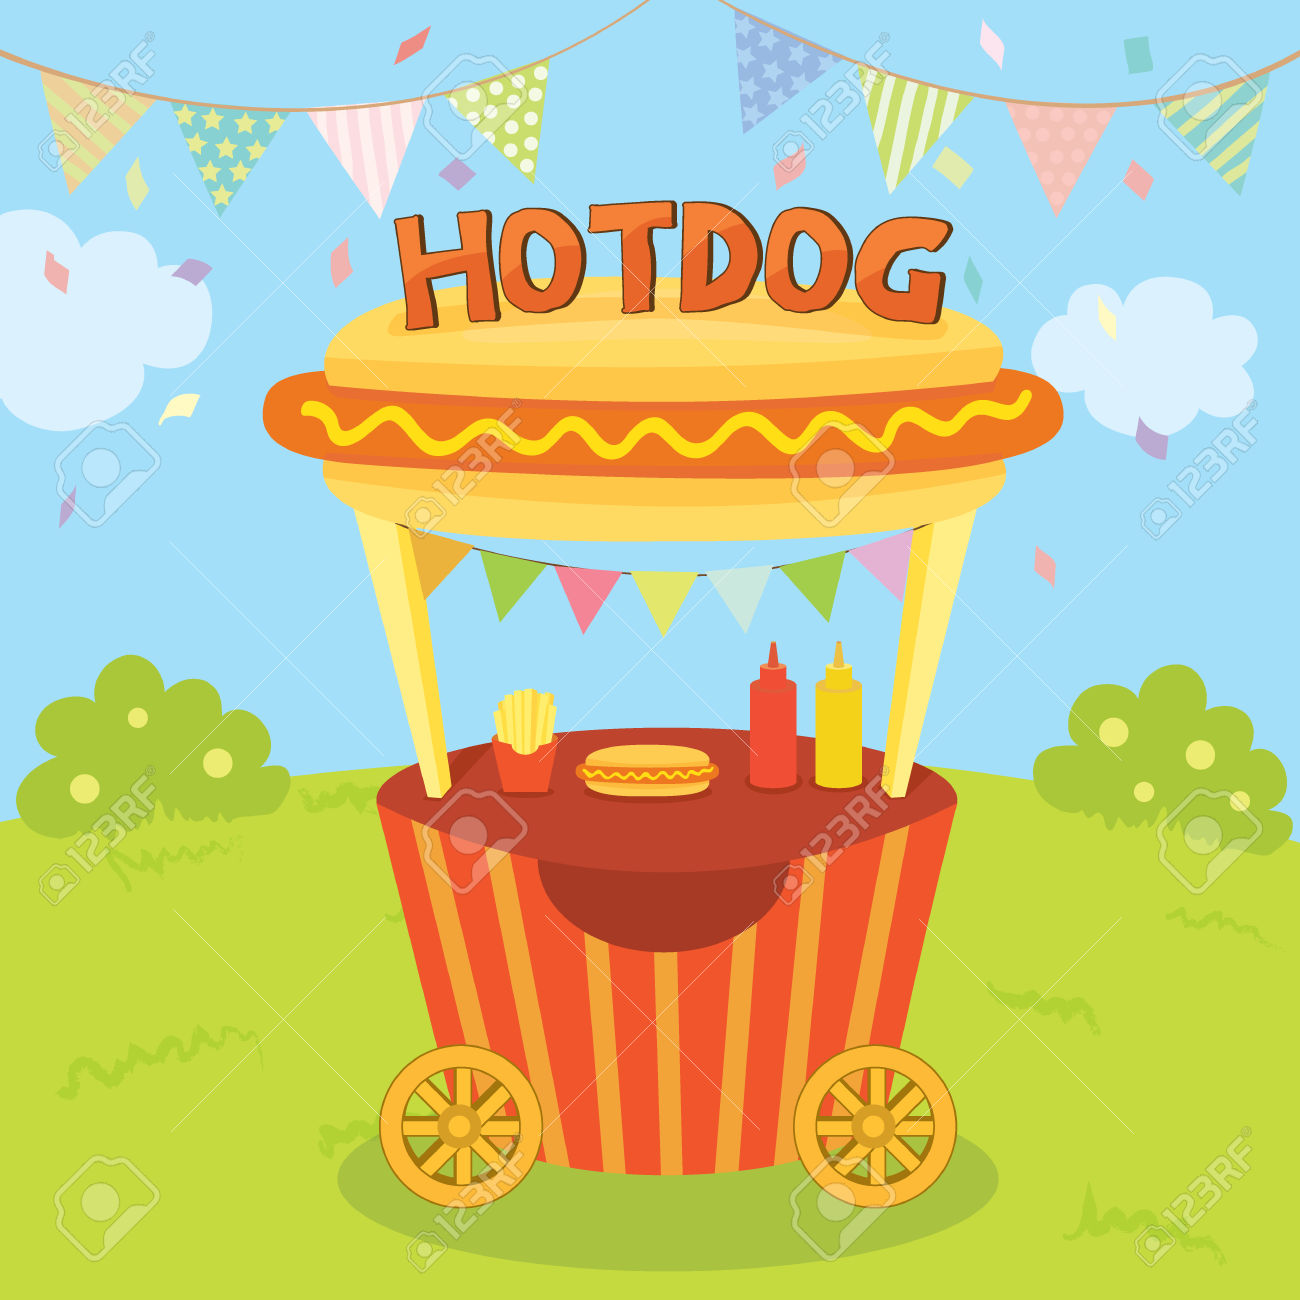 Illustration Vector Of Hotdog Cart Shop Decoration With Buntings.